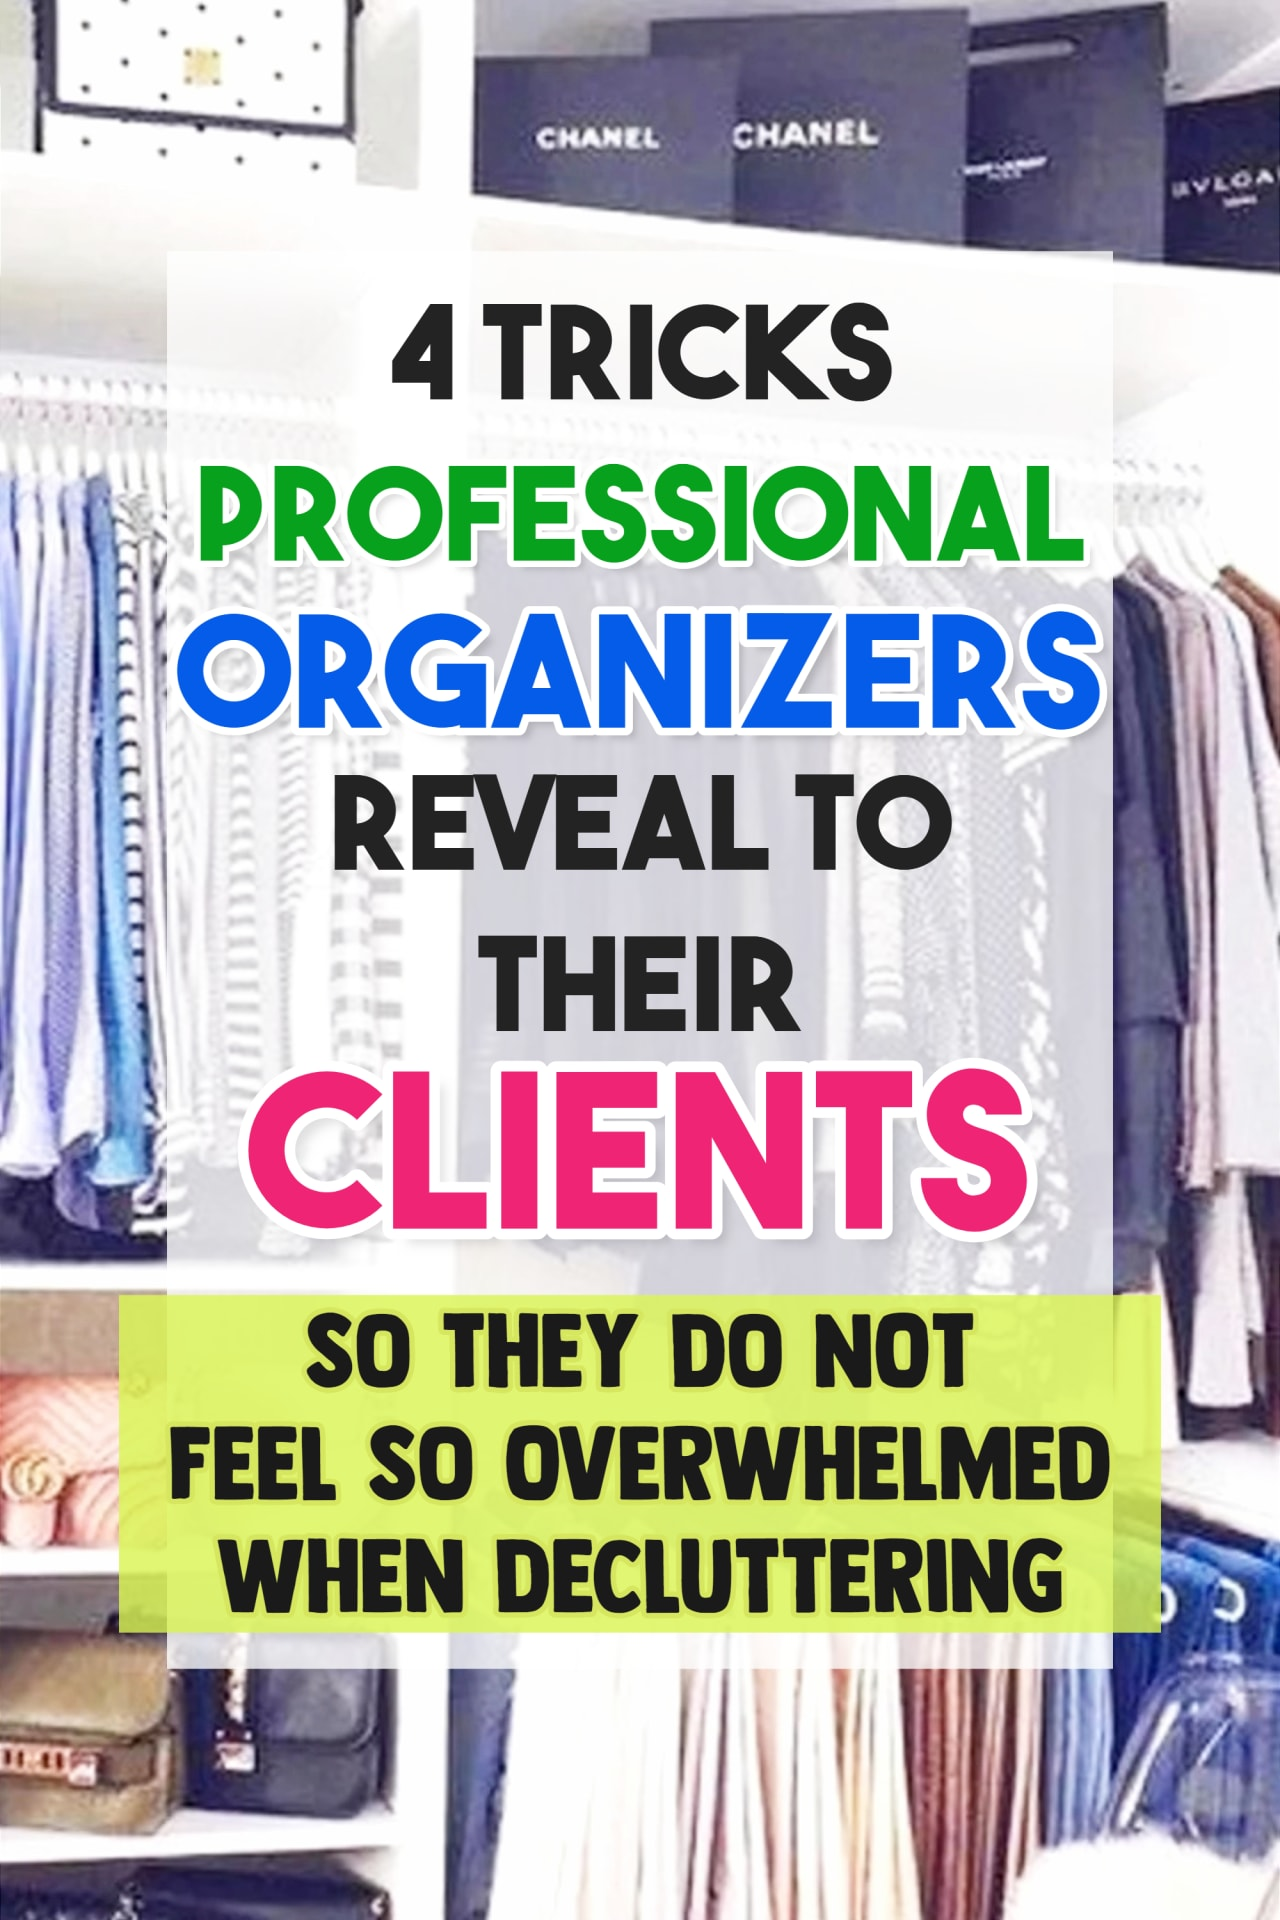 Uncluttering your home?  Don't know where to START? How to declutter and organize your home when you're feeling OVERWHELMED with CLUTTER. These 4 tips from Professional Organizers WILL show you how to start getting organized when you are OVERWHELMED